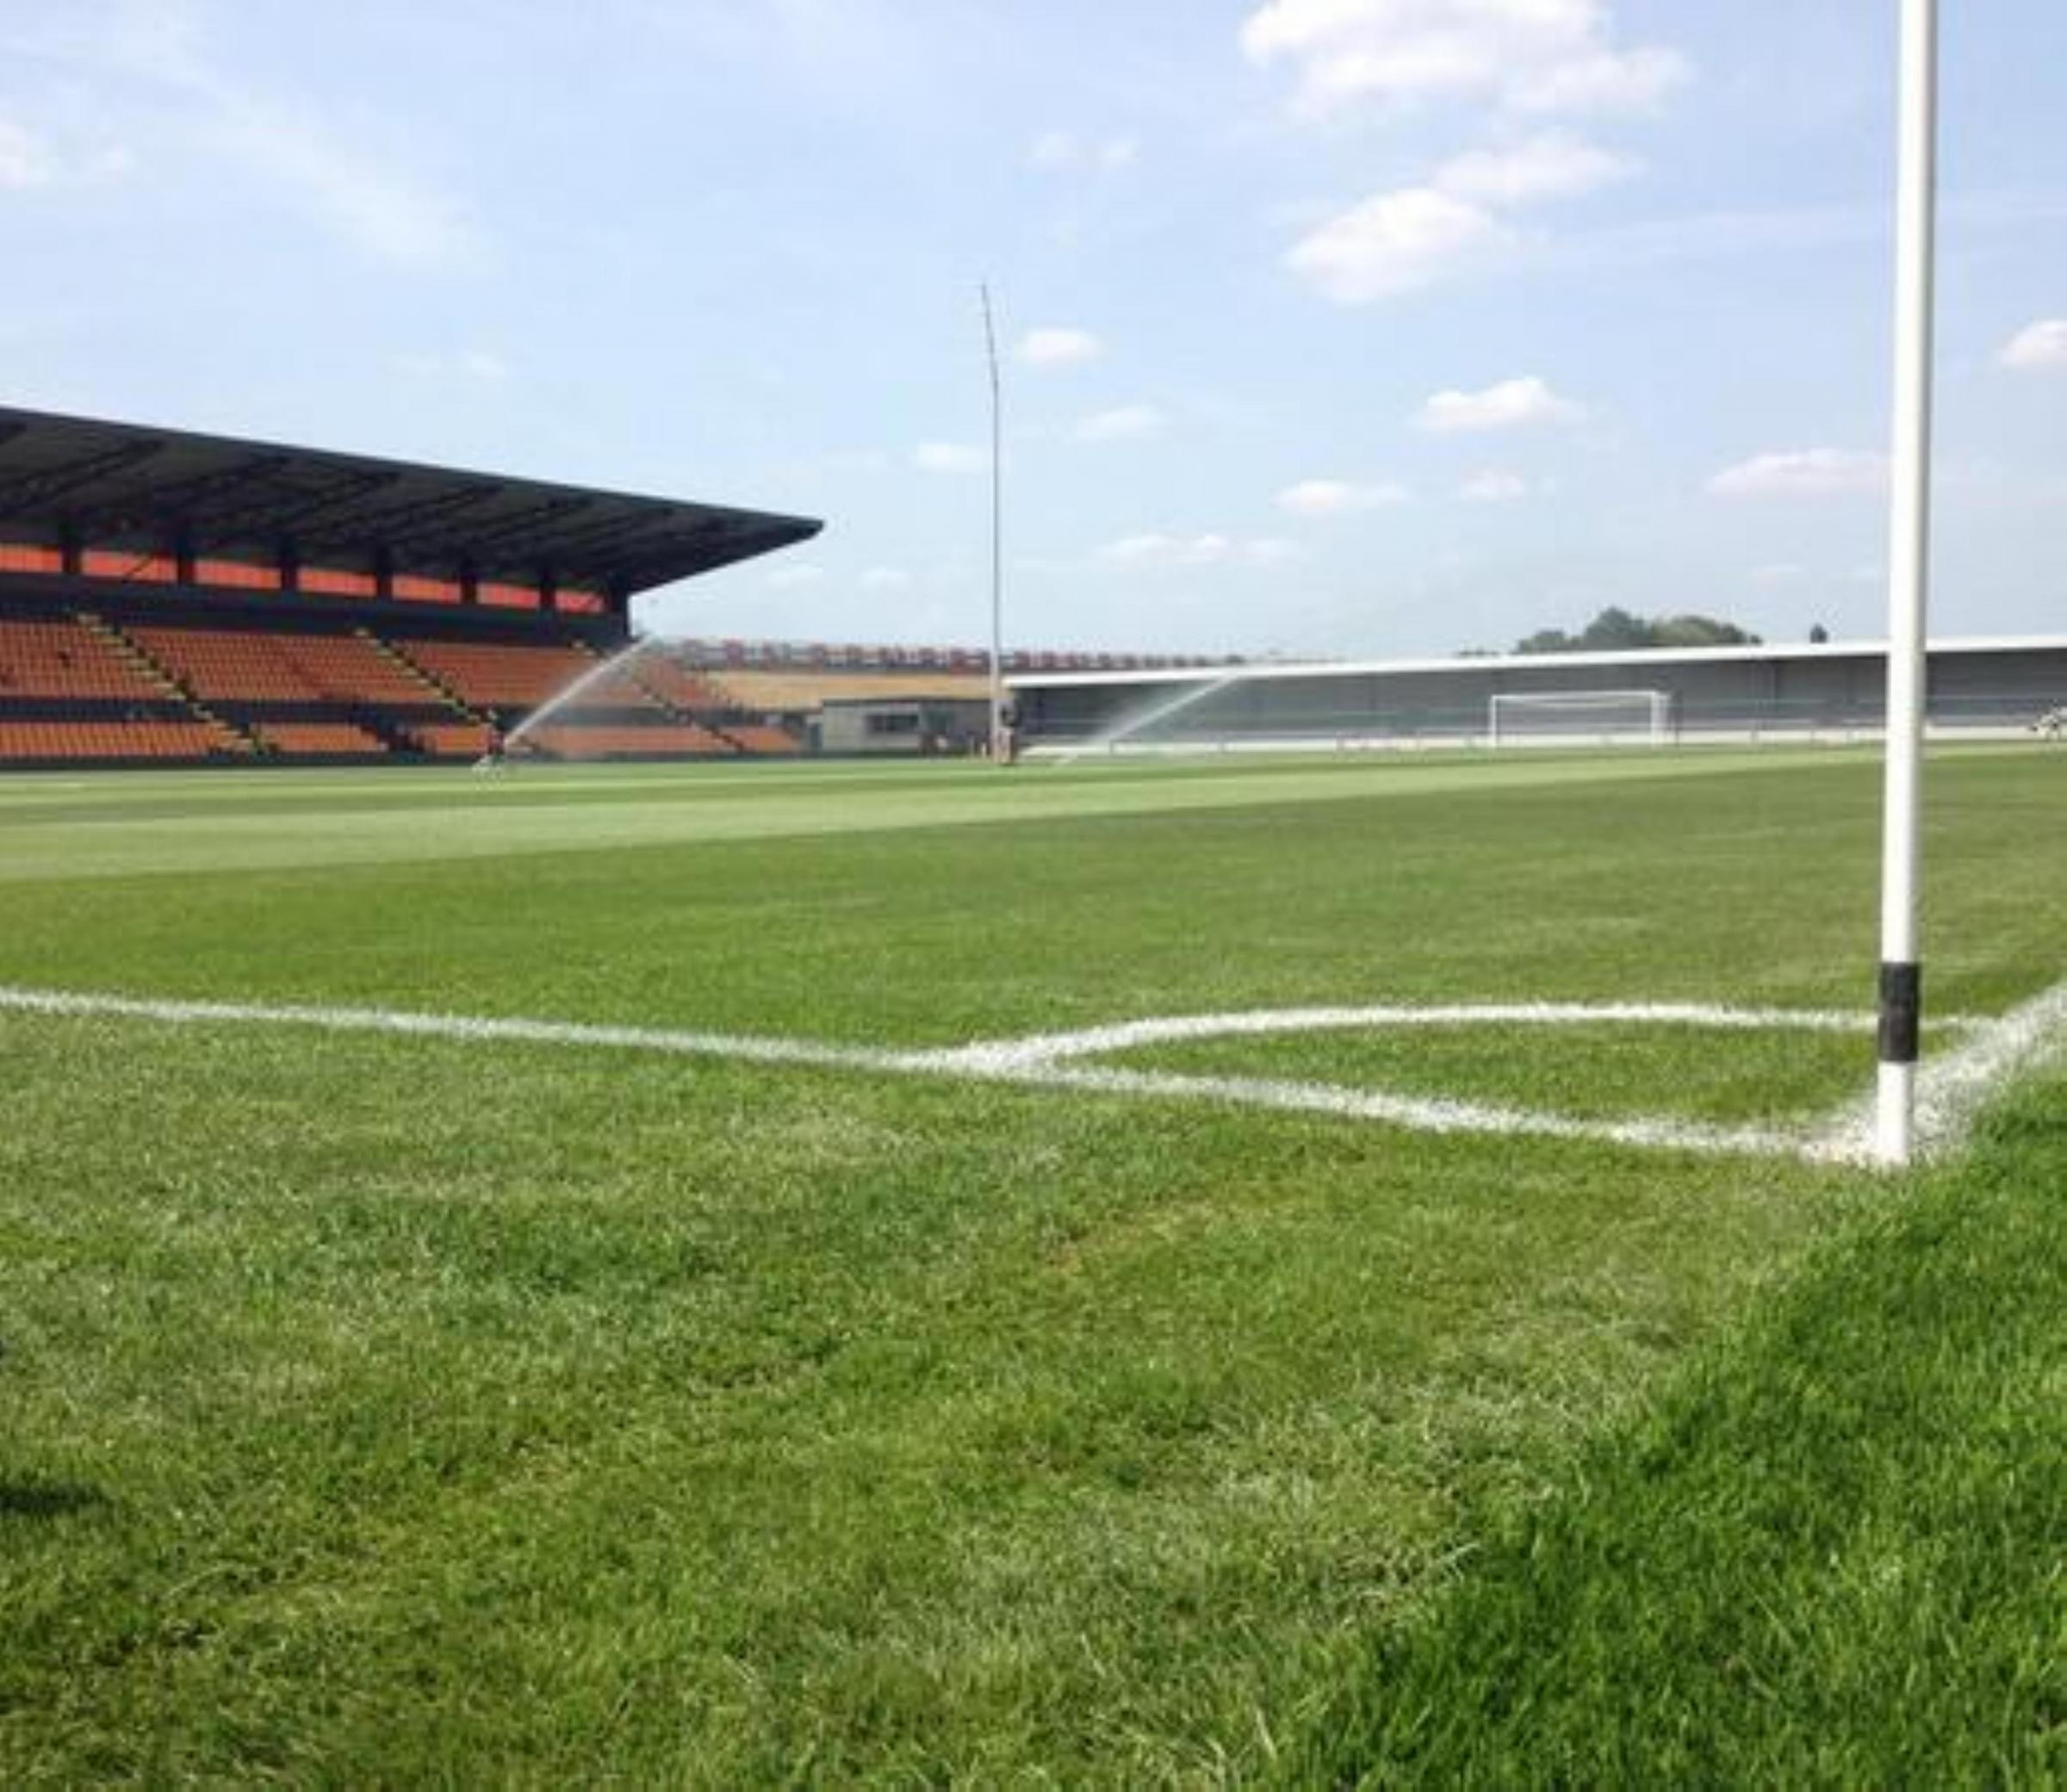 Barnet host Dartford at The Hive this afternoon.